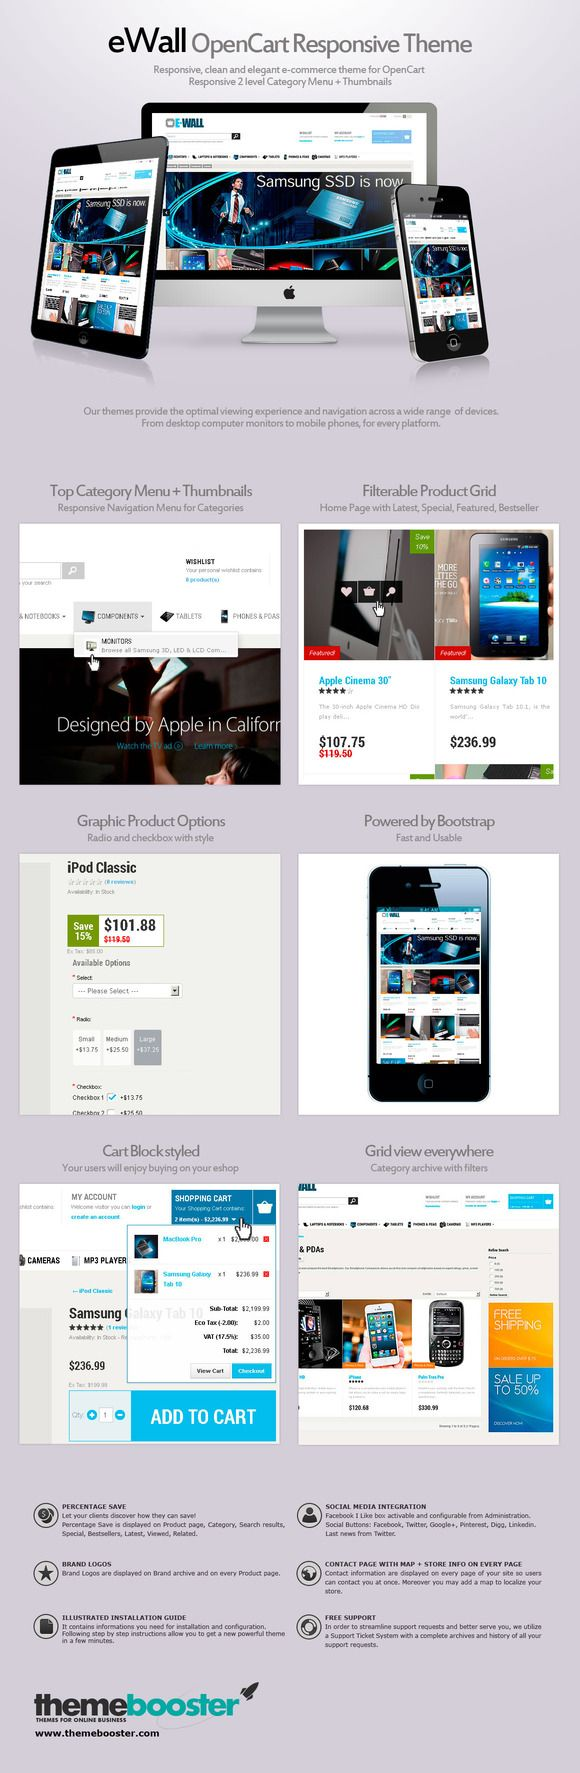 eWall OpenCart responsive theme by ThemeBooster.com on Creative Market